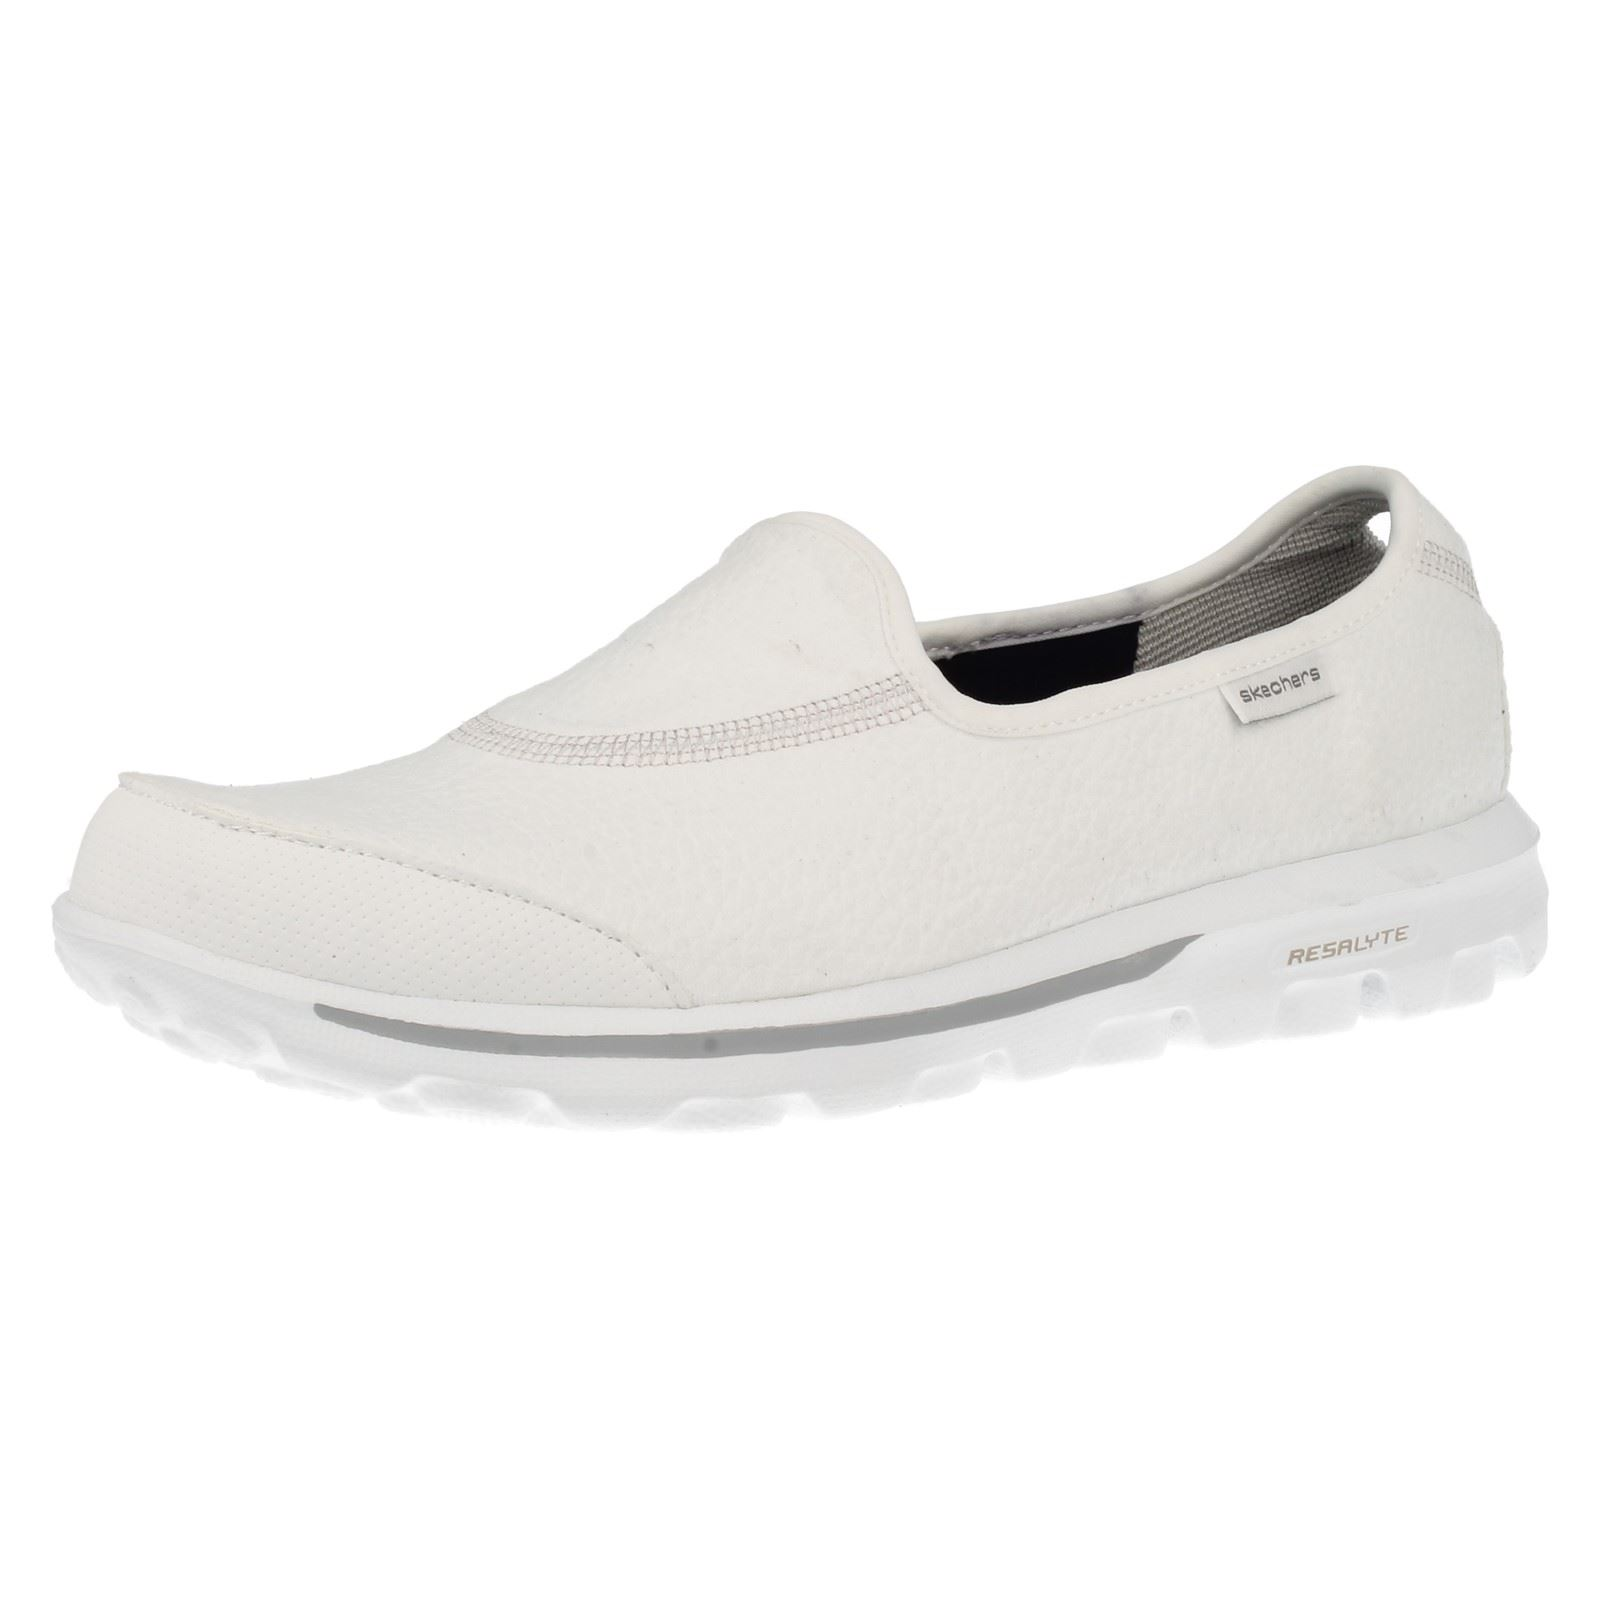 skechers slip on walking shoes go walk ultimate